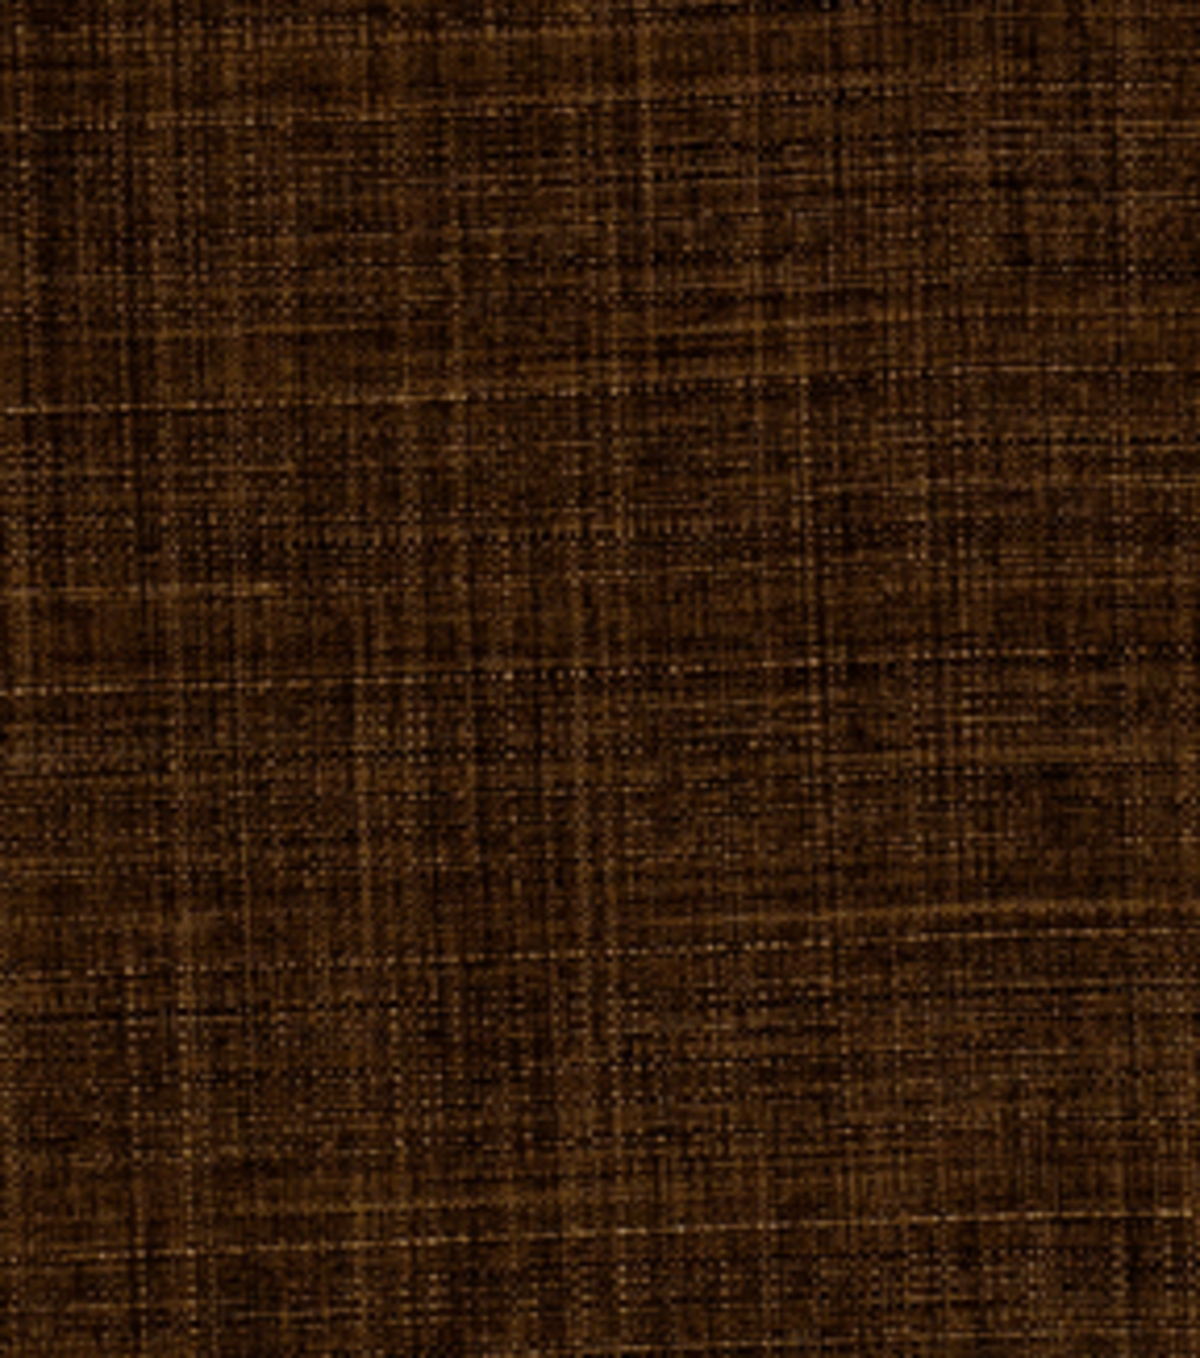 8\u0027\u0027x8\u0027\u0027 Home Decor Fabric Swatch-Solid Fabric Eaton Square Adrift Tobacco